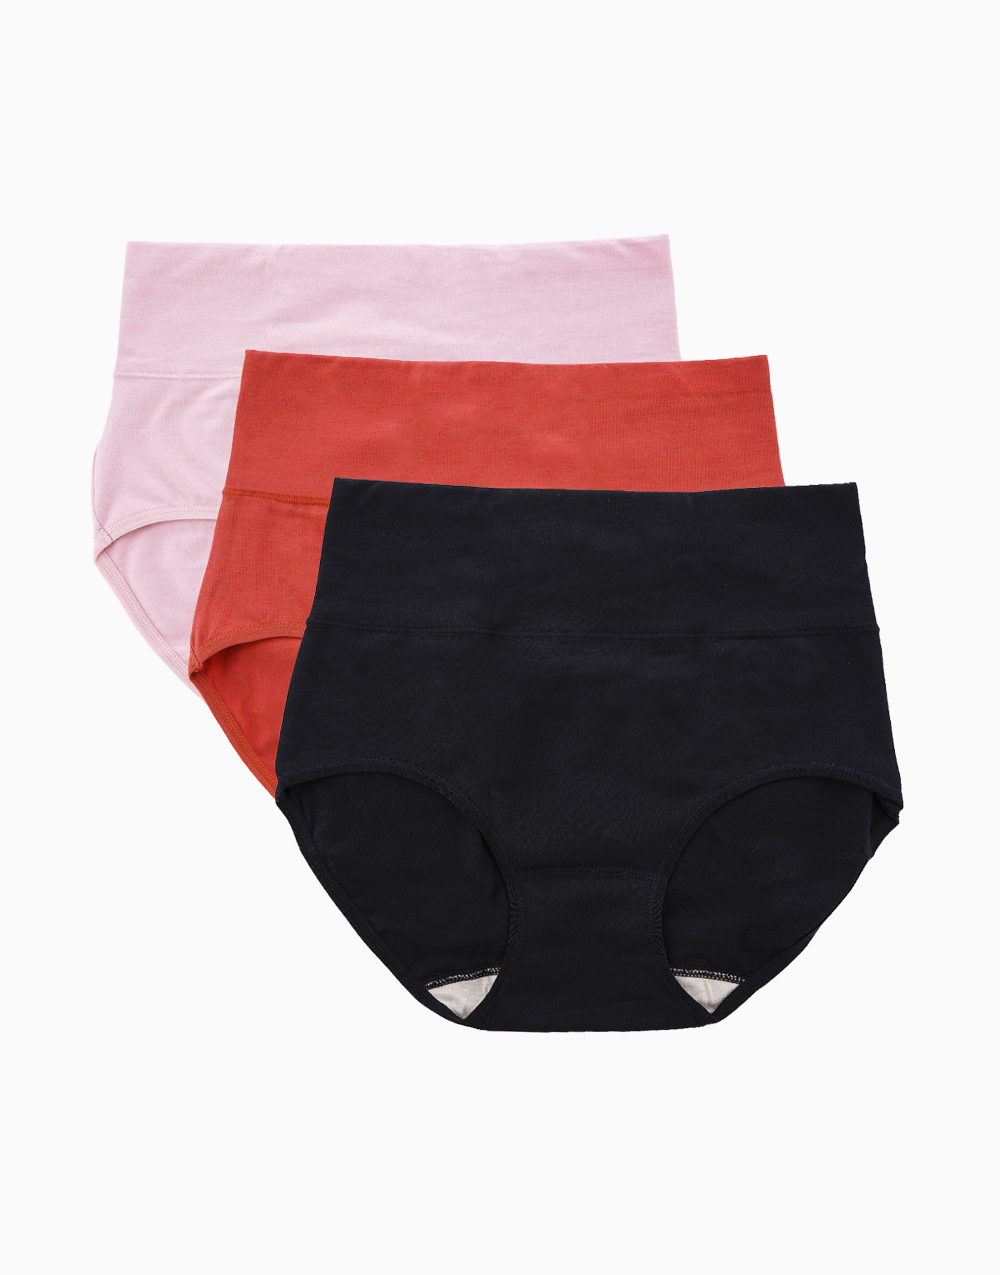 Belly Bikinis Mixed Color Set (Set of 3 High Rise Control Panties) by Jellyfit | Medium